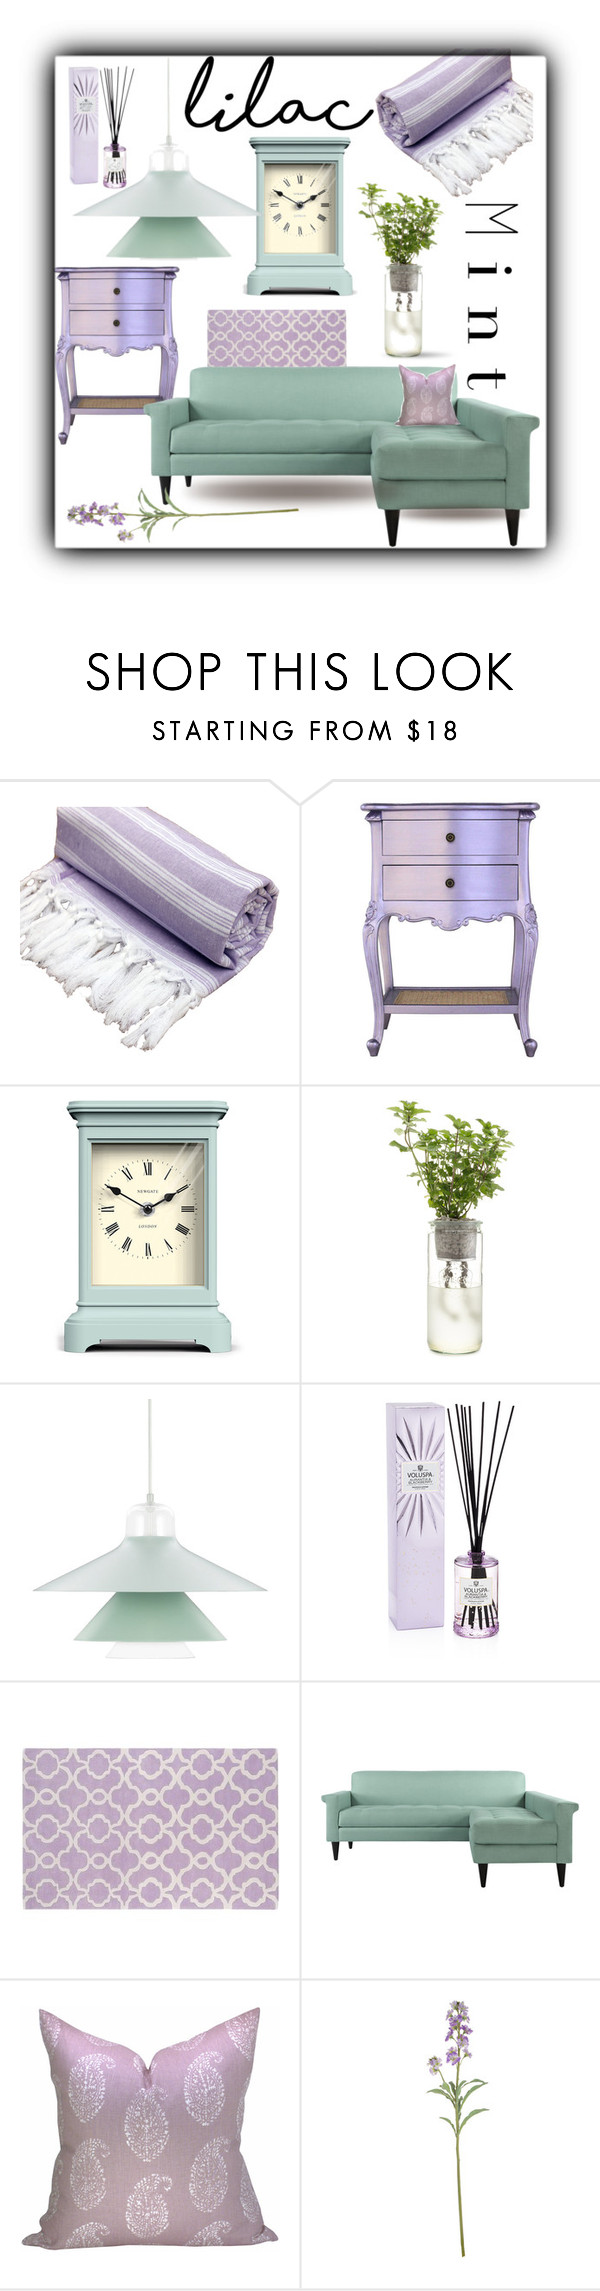 """""""Lilac and Mint"""" by queenofsienna ❤ liked on Polyvore featuring interior, interiors, interior design, home, home decor, interior decorating, Newgate, Normann Copenhagen, Voluspa and Kaleen"""